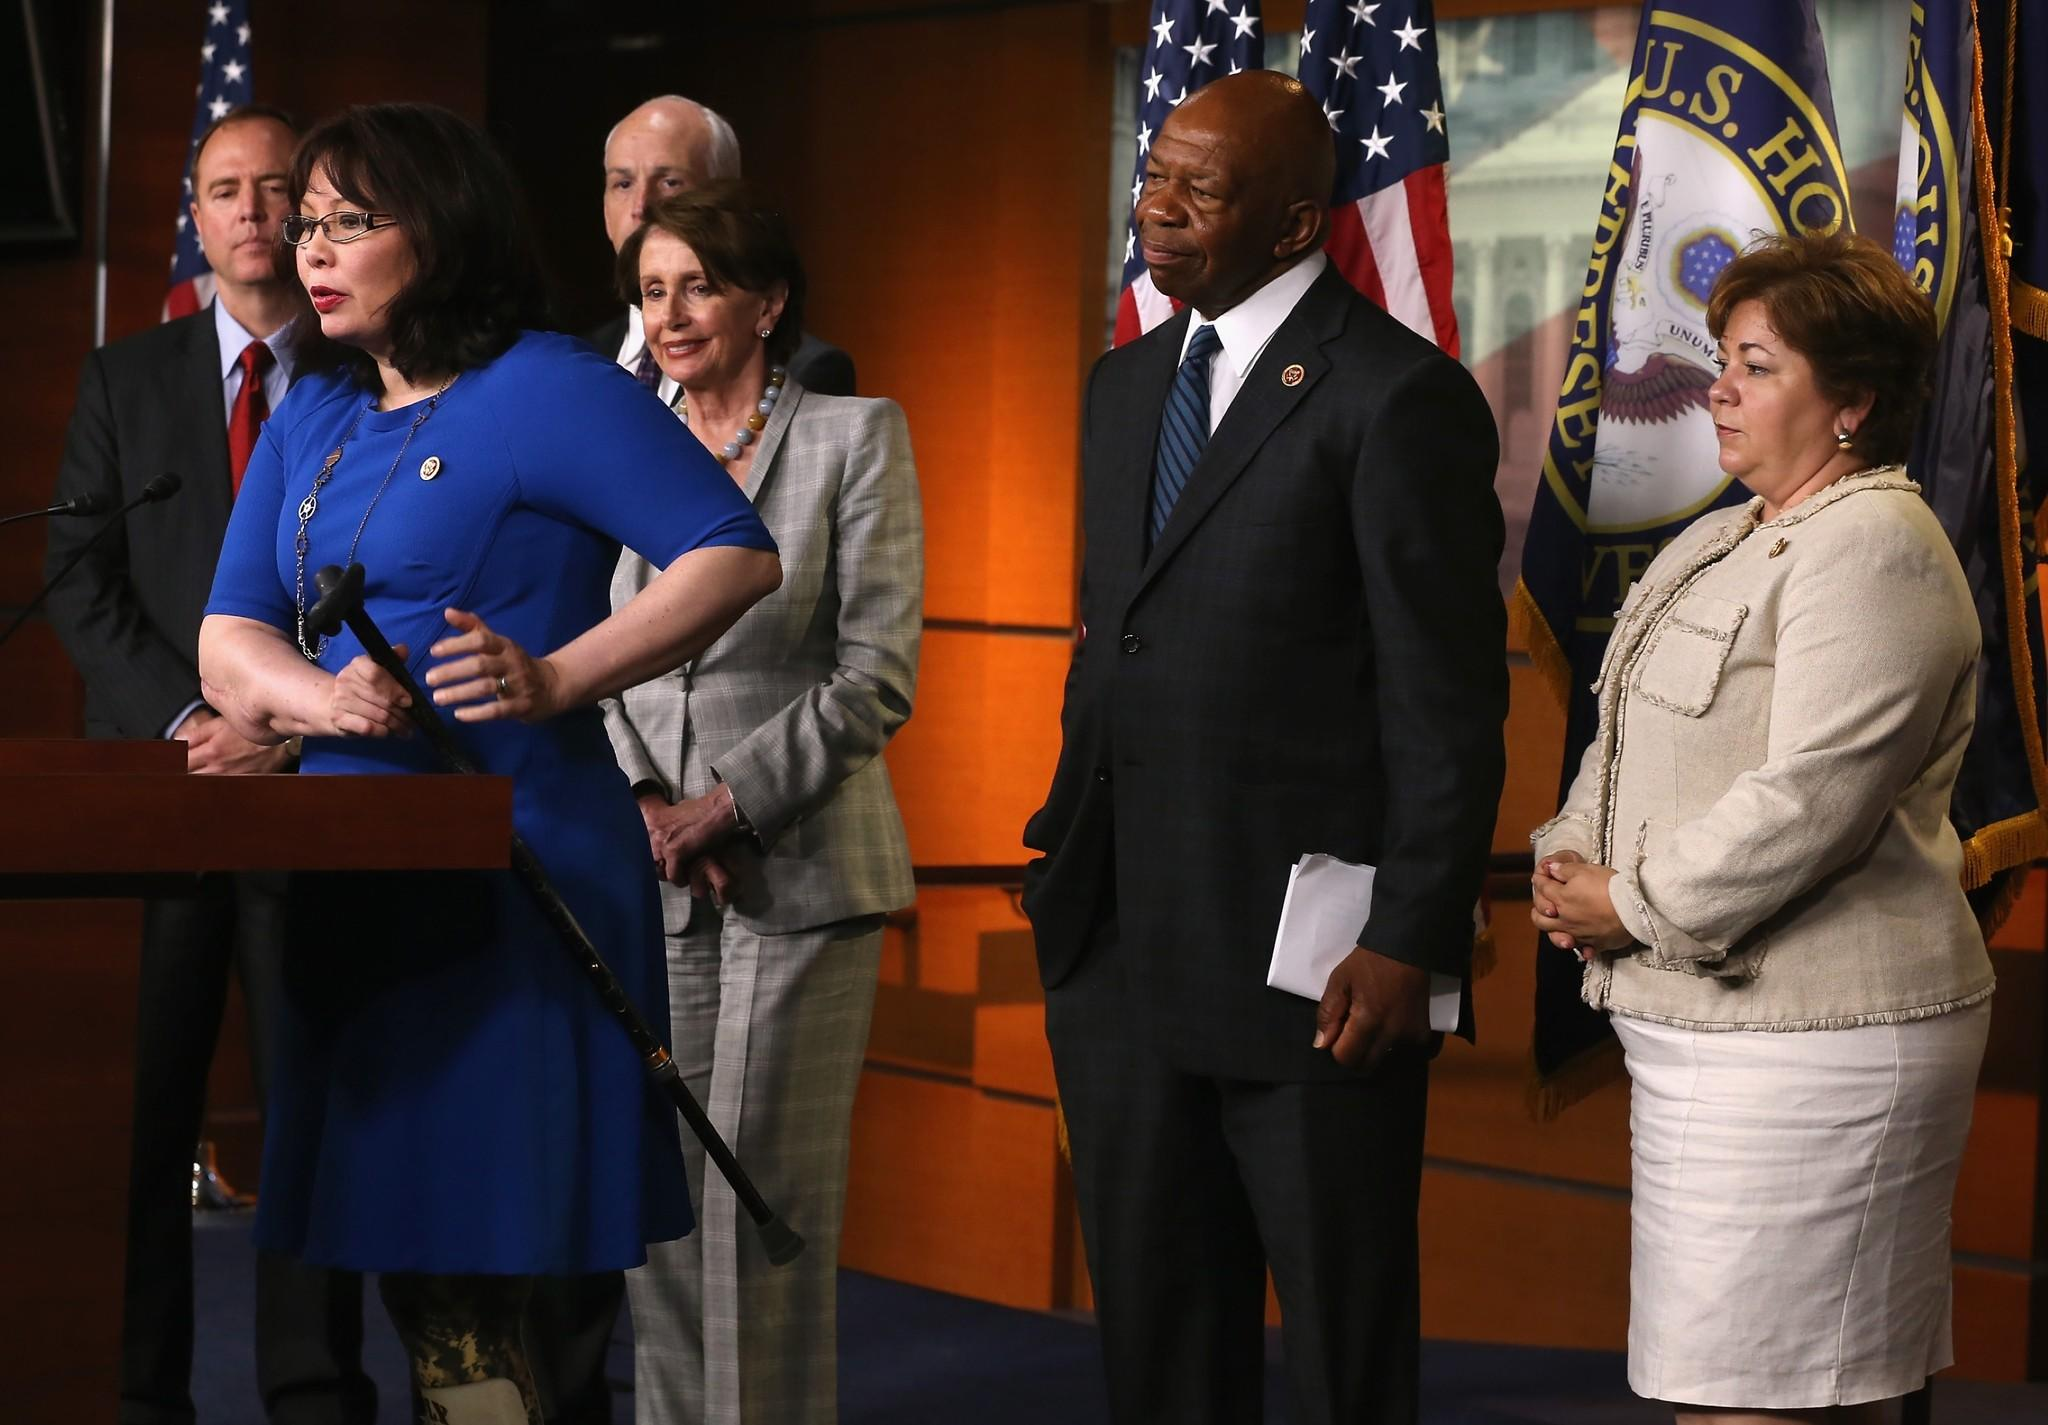 U.S. Rep. Tammy Duckworth (D-IL) speaks during a news conference on Capitol Hill, May 21, 2014 in Washington, DC.